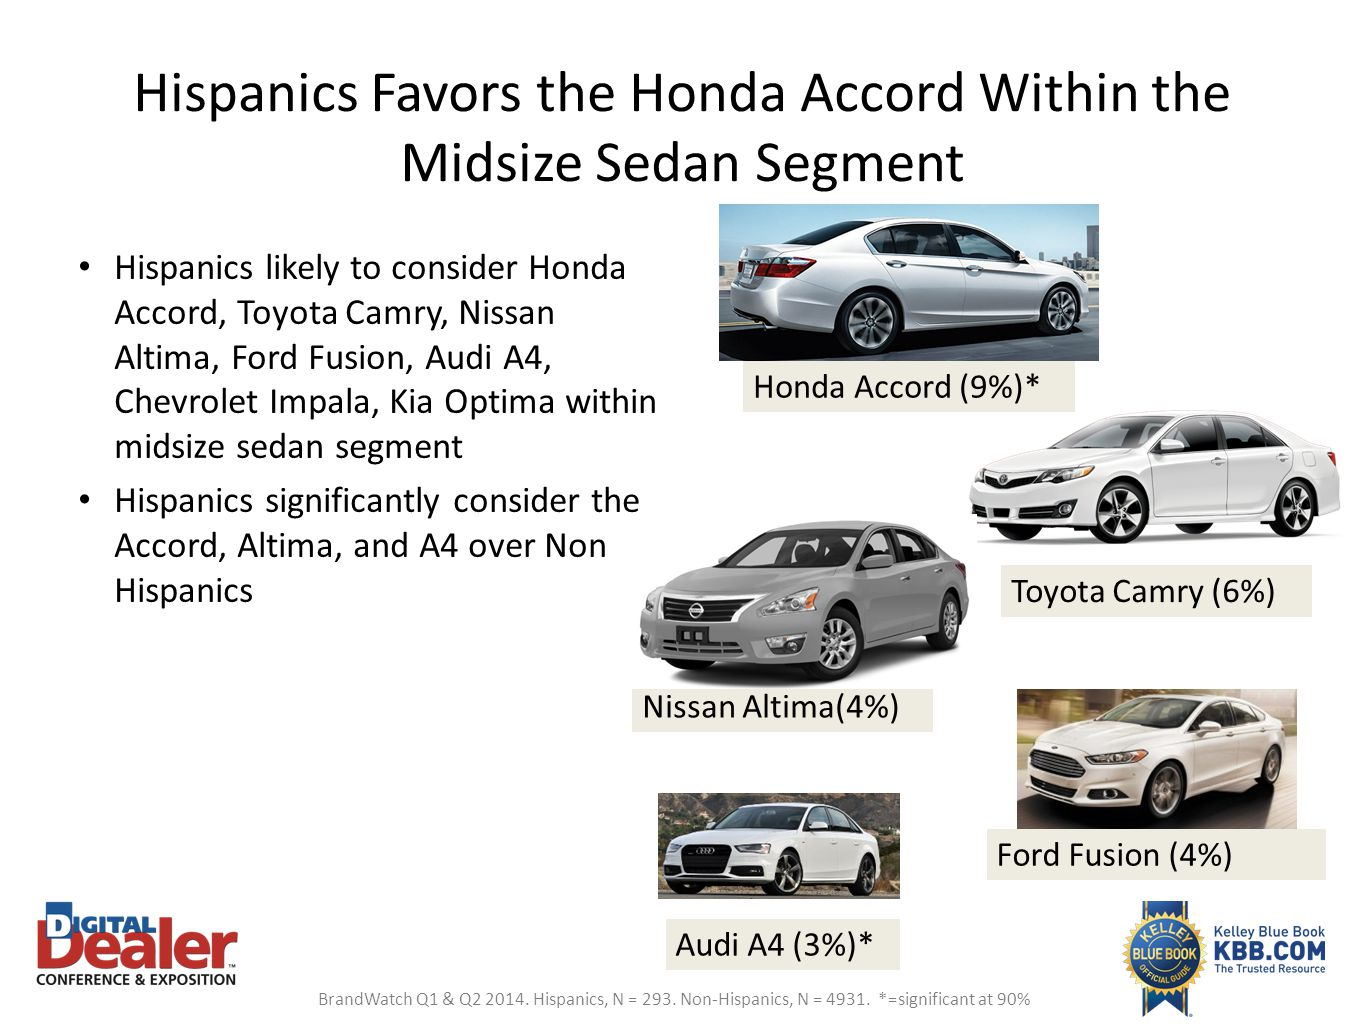 Hispanics Favors the Honda Accord Within the Midsize Sedan Segment